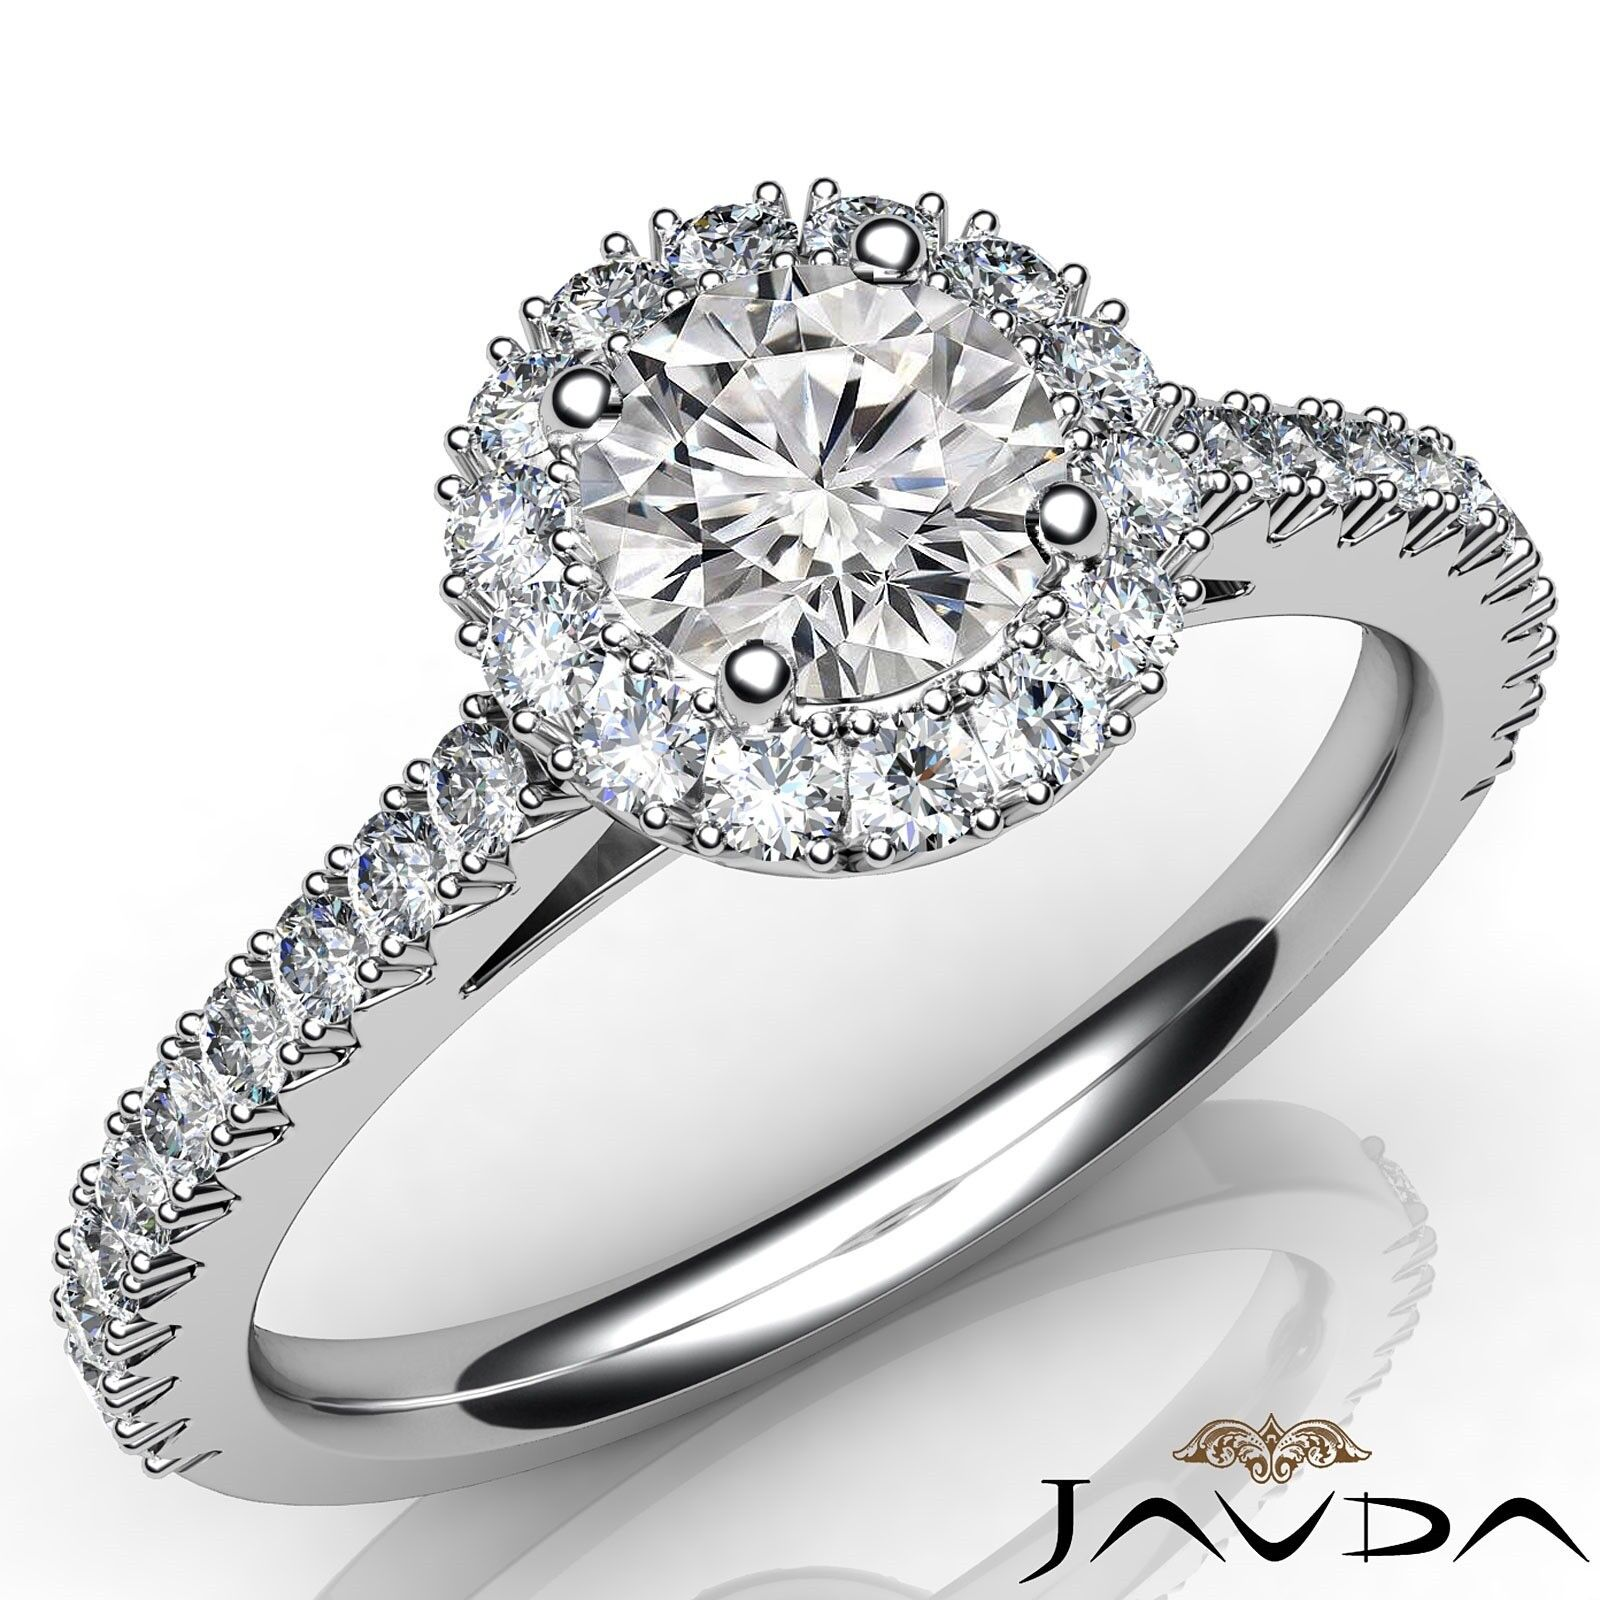 1.4ctw Classic 4 Prong Round Diamond Engagement Ring GIA F-VVS2 White Gold Rings